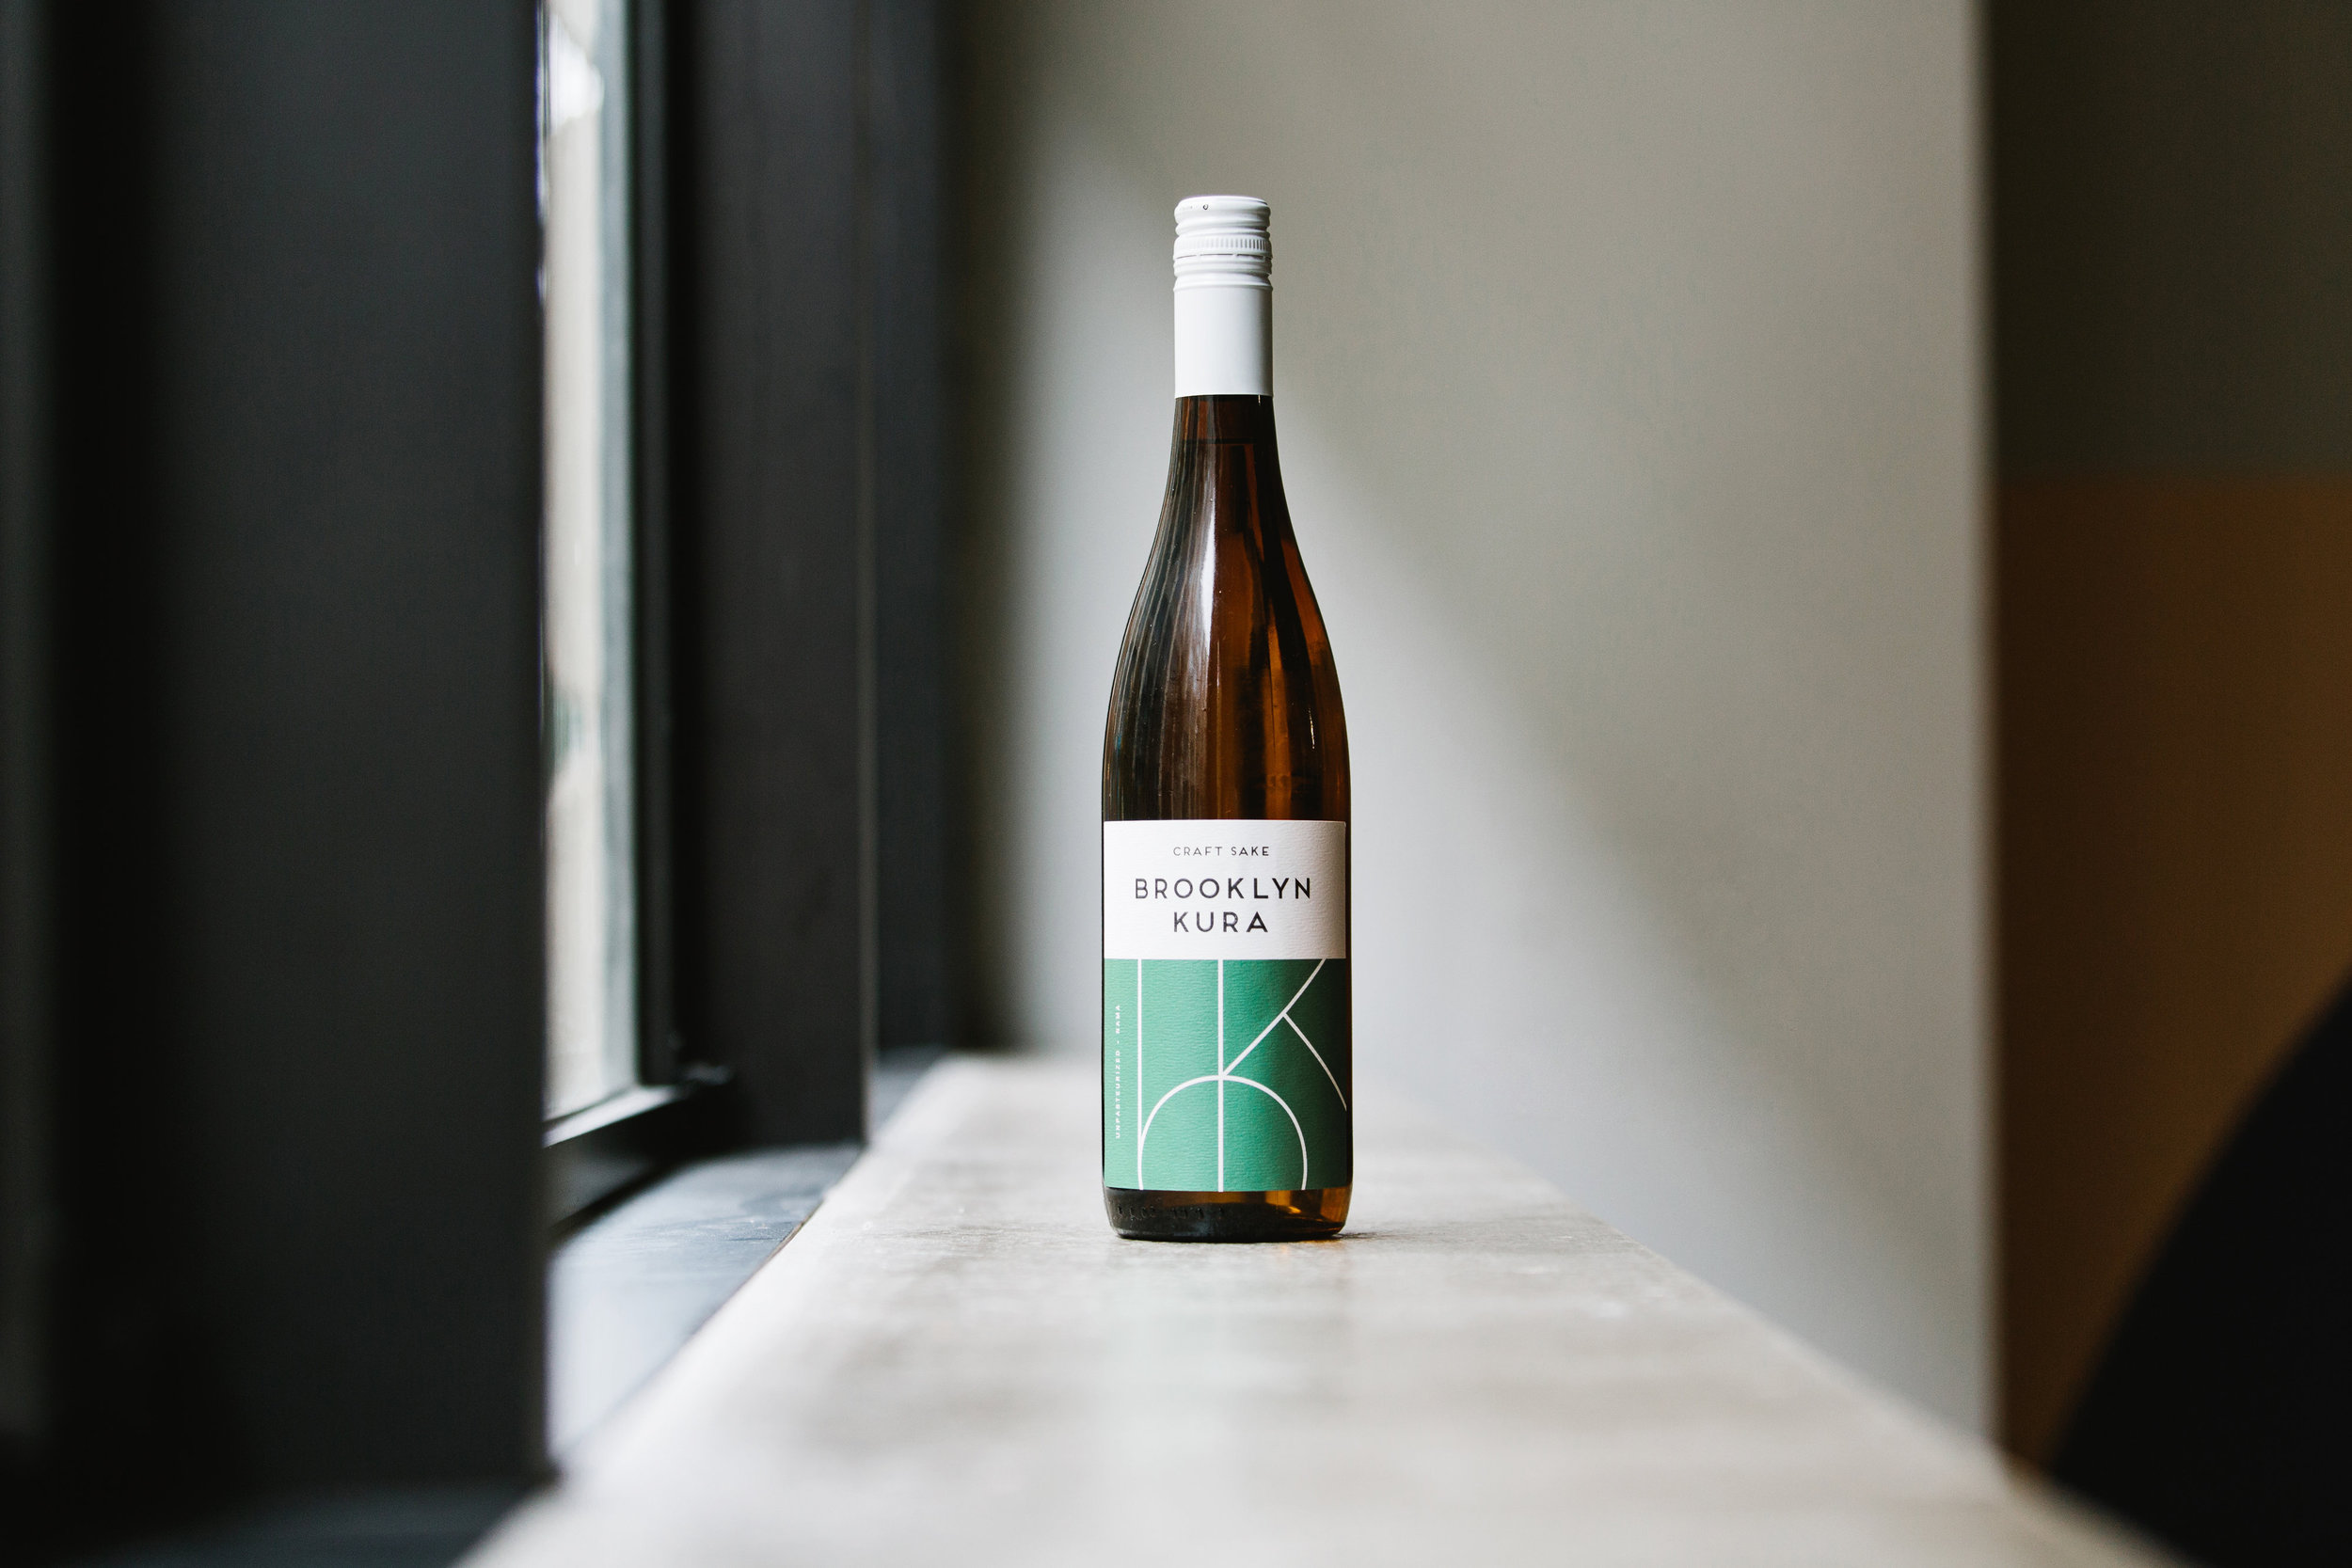 #14 Junmai Ginjo - Aromatic, fruit-forward and clean. Showing of white flowers, ripe apple, and tropical fruit